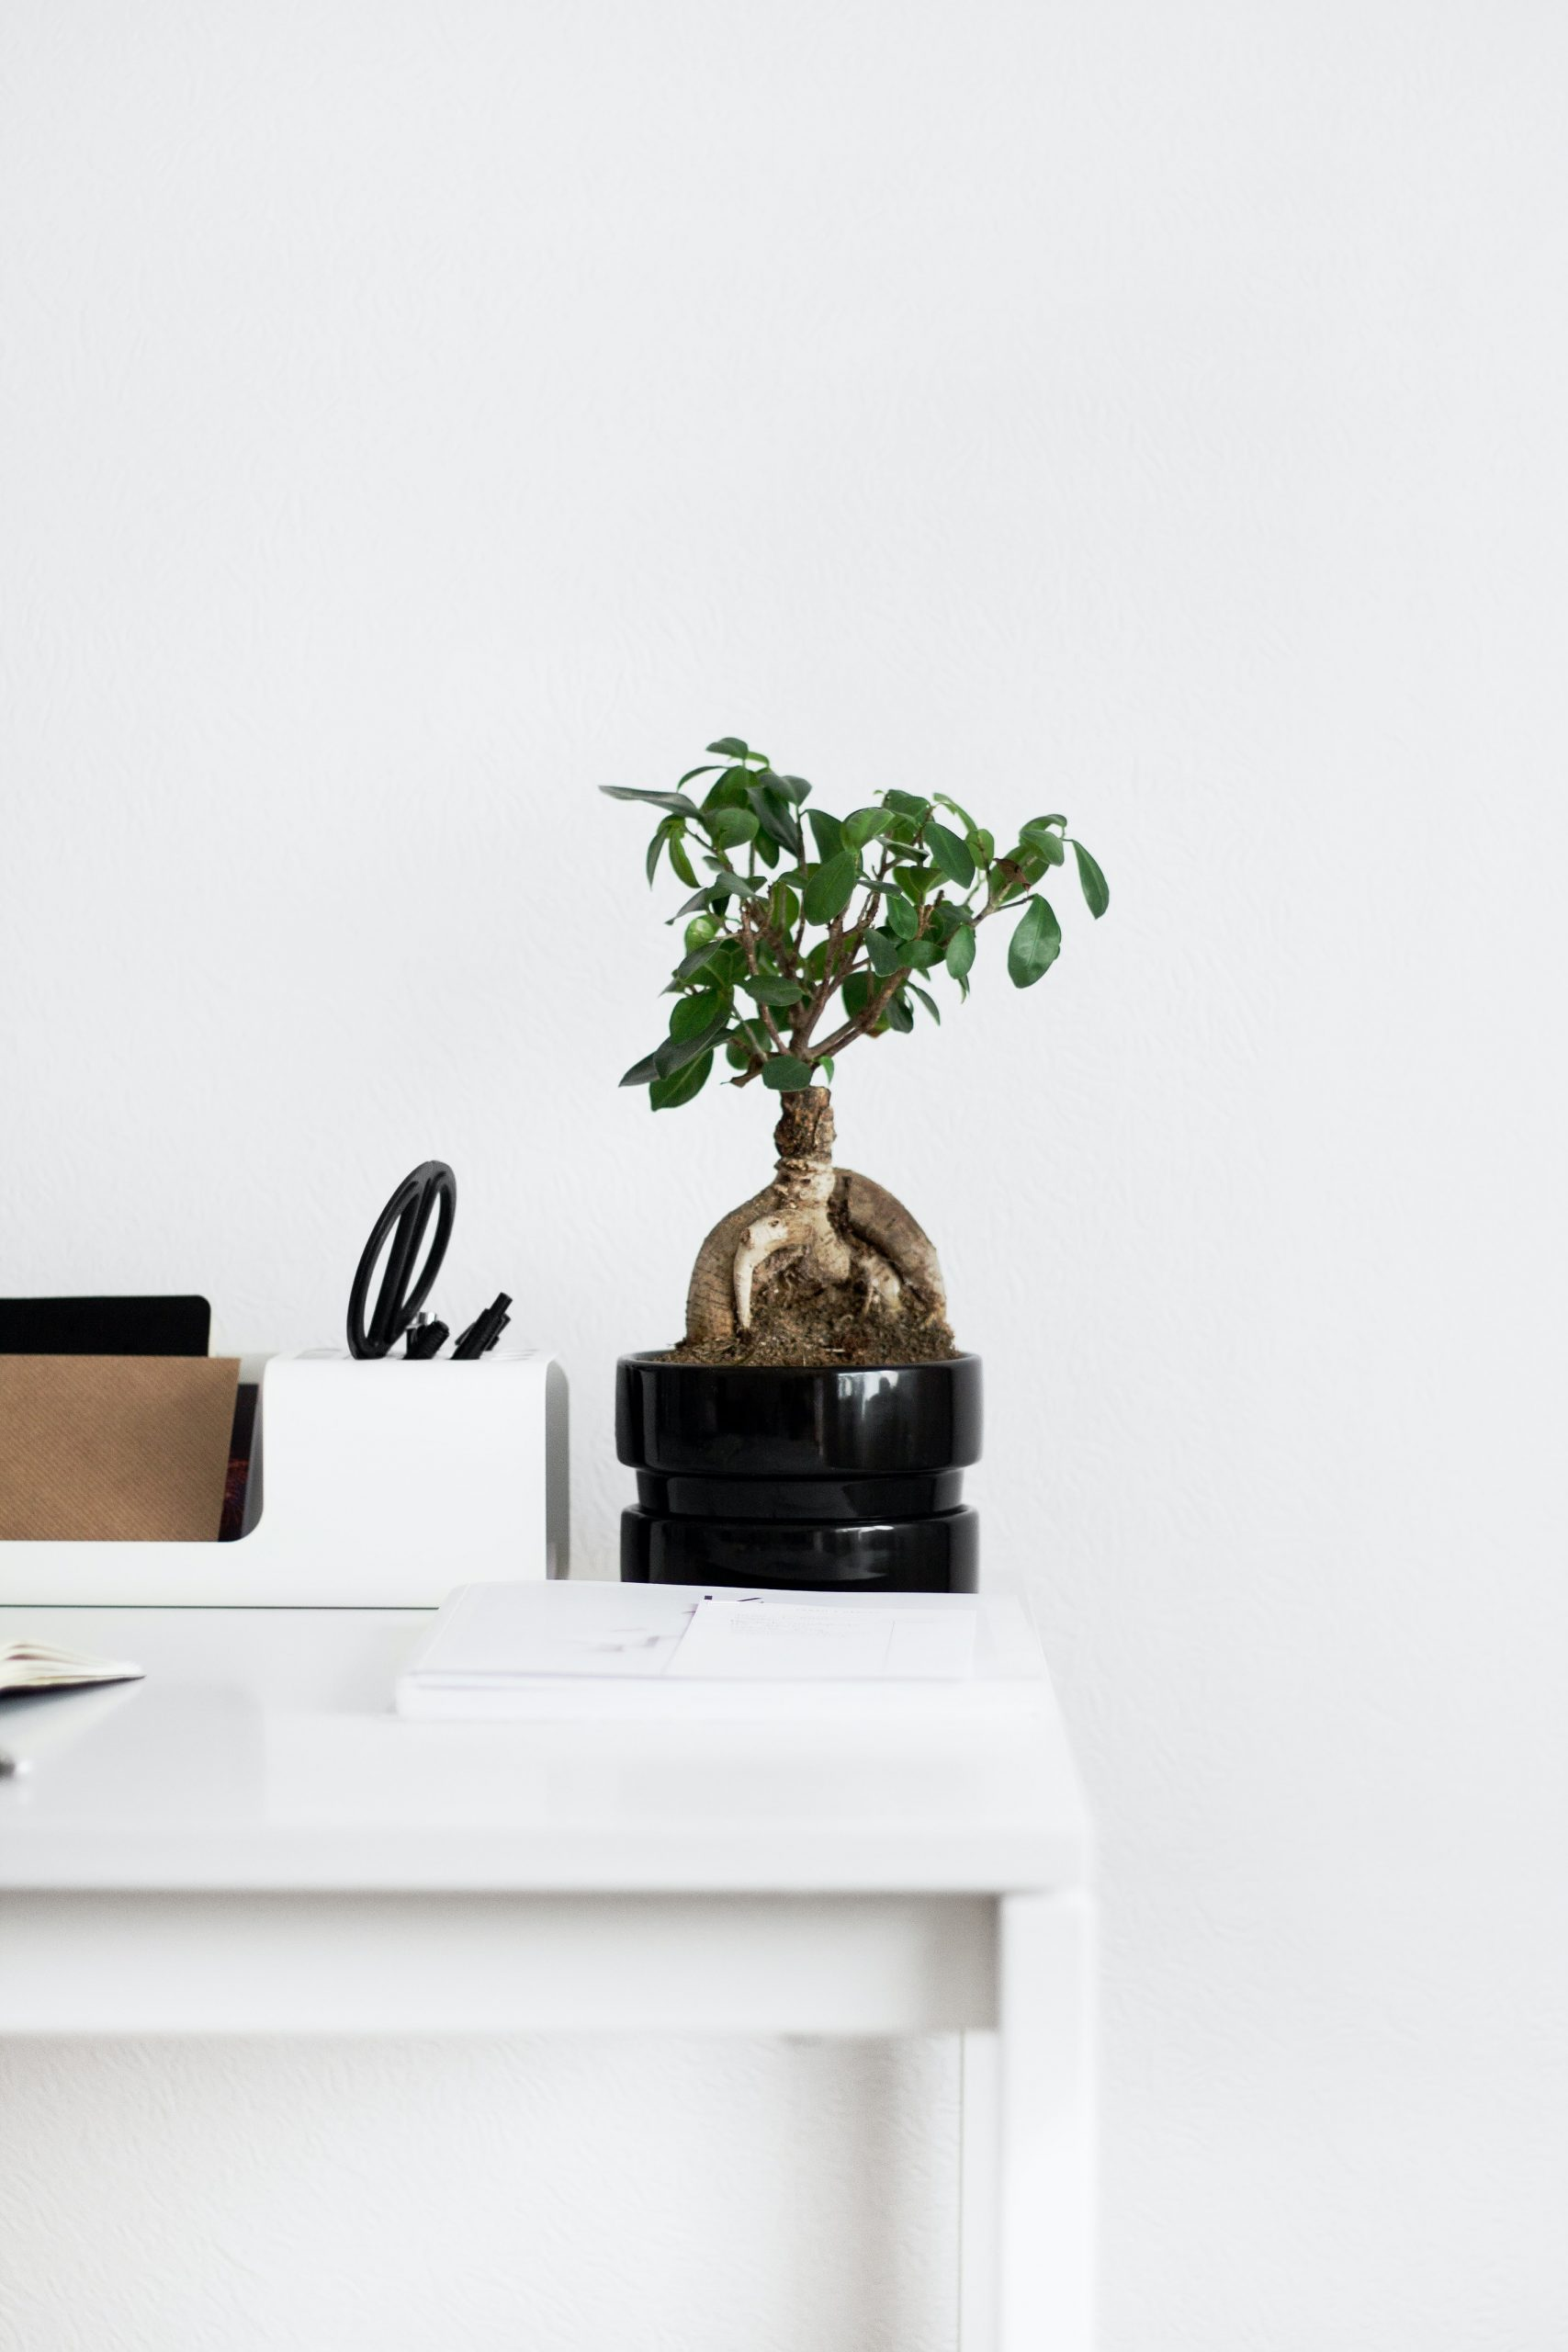 Decorate Your Home Office to Positively Impact Mood and Performance